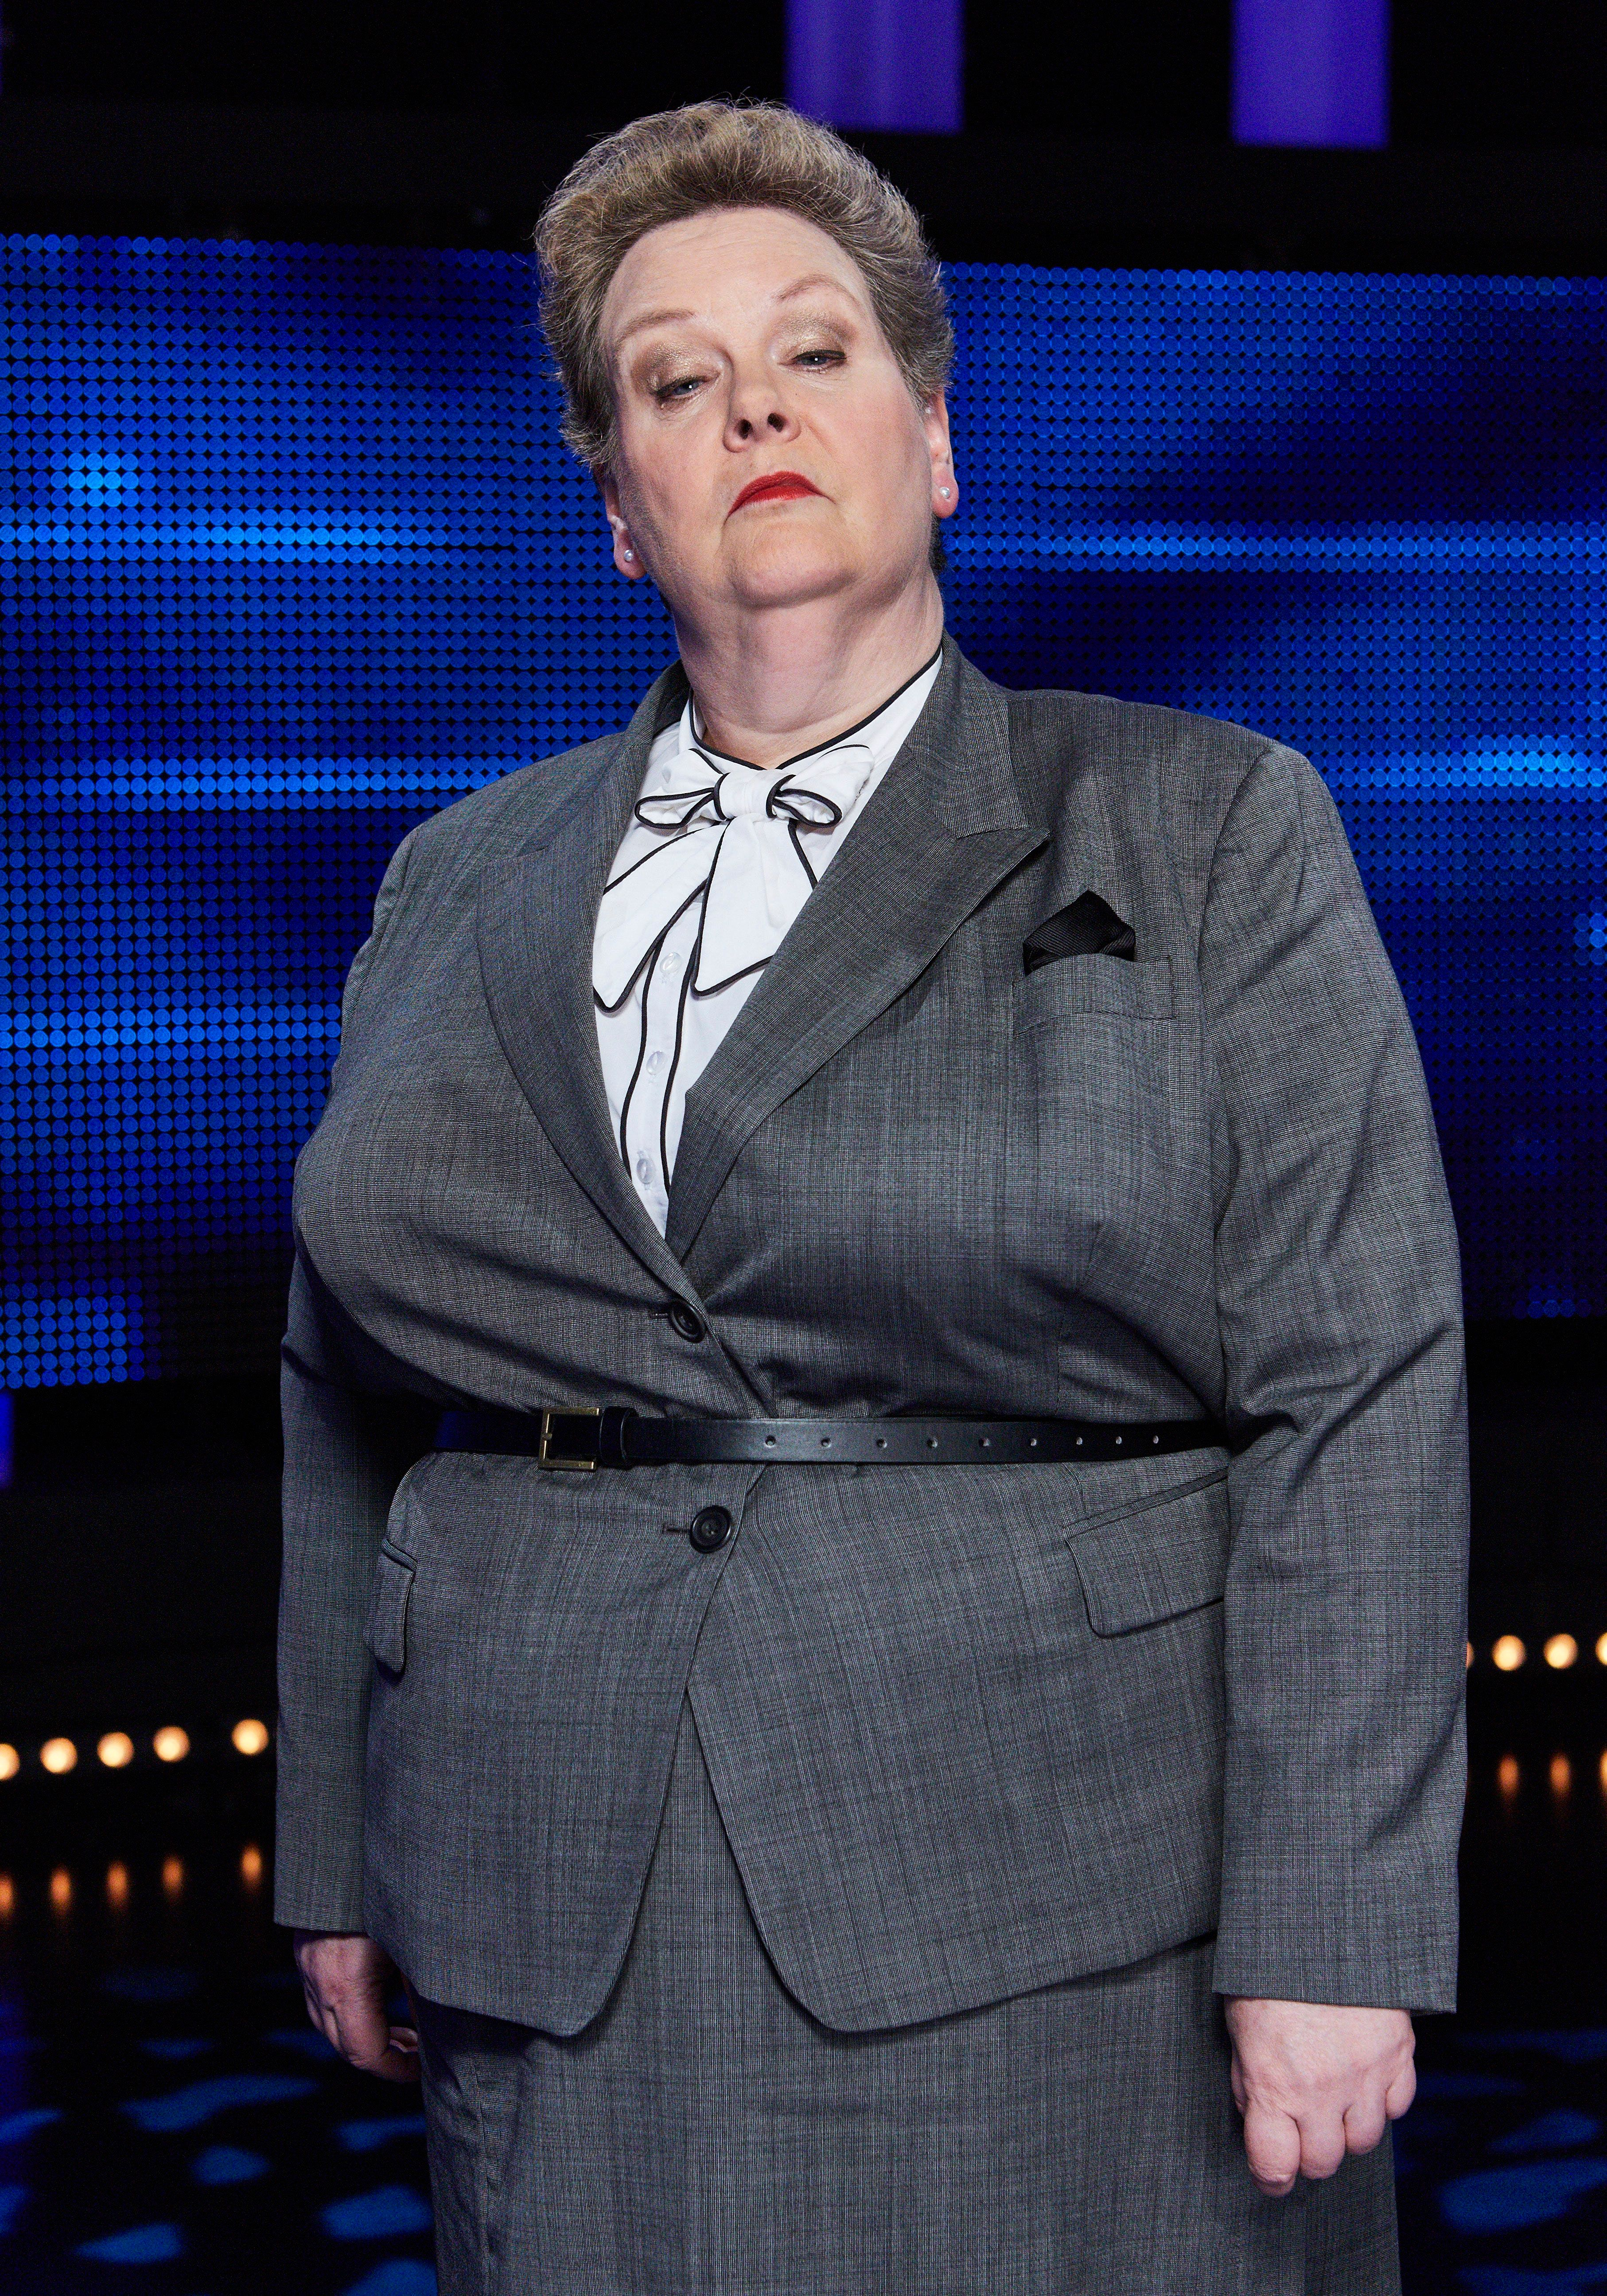 I'M A CELEB: The Chase' Star Anne Hegerty Is Latest Star Rumoured For The